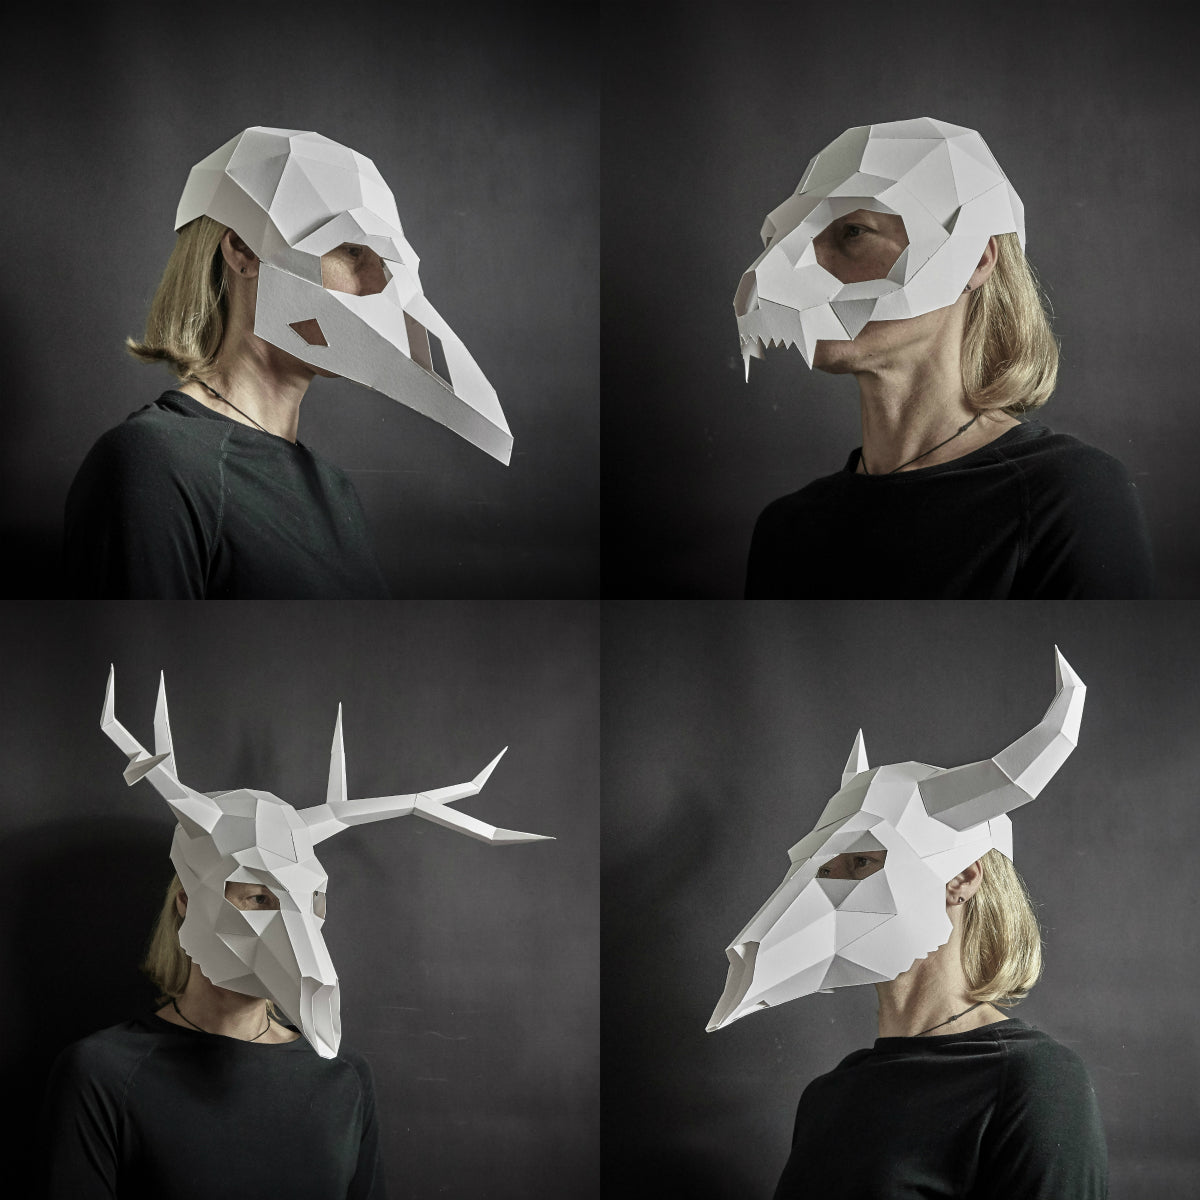 picture about 3d Paper Mask Template Free Printable identified as Wintercroft ® - Minimal-Poly Masks